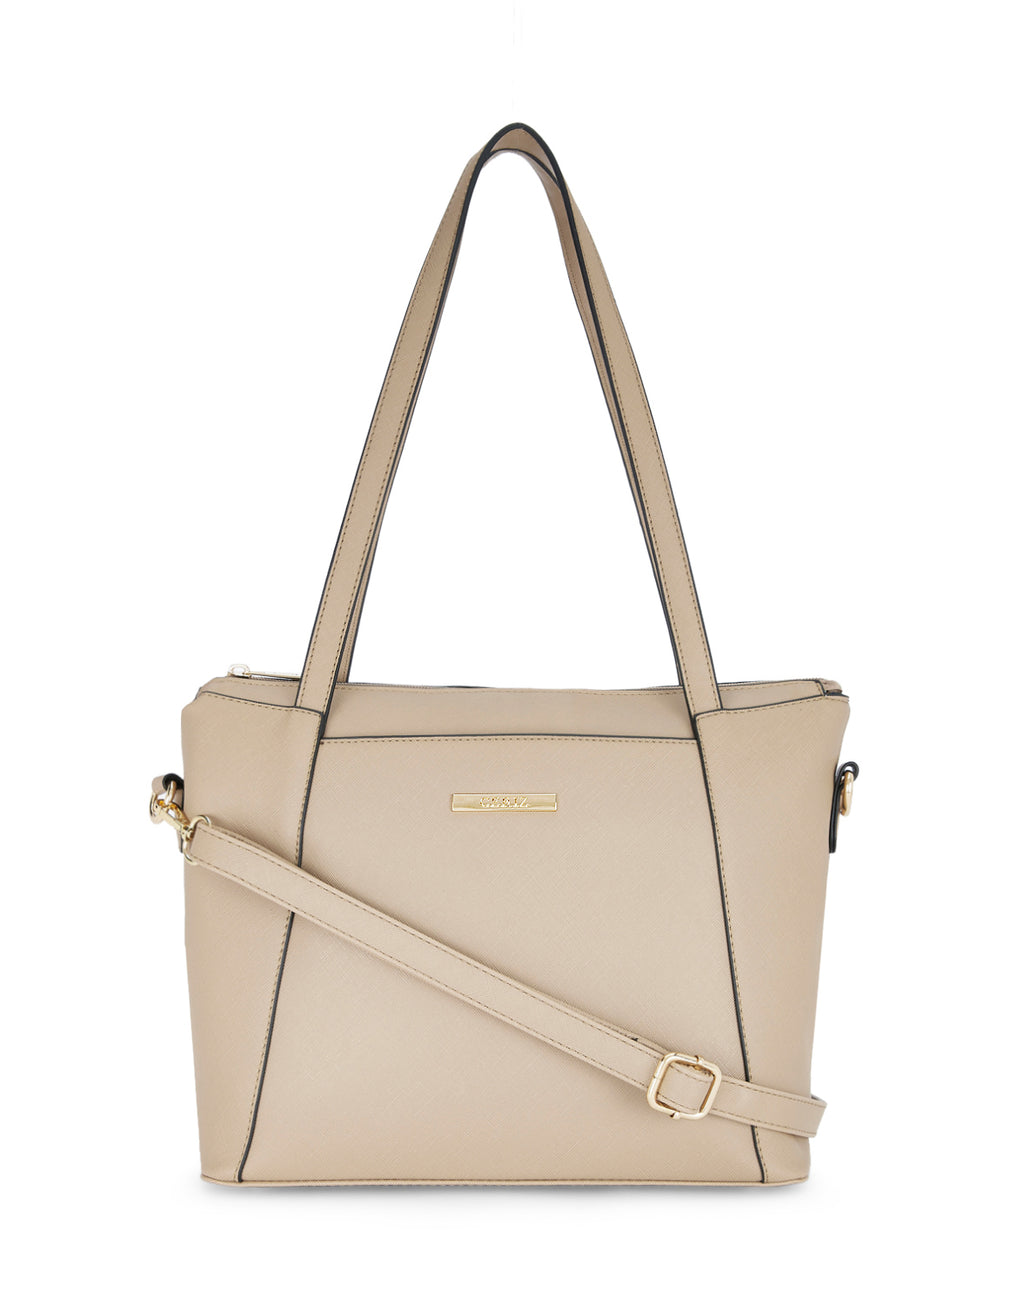 Margit Textured Beige Handbag